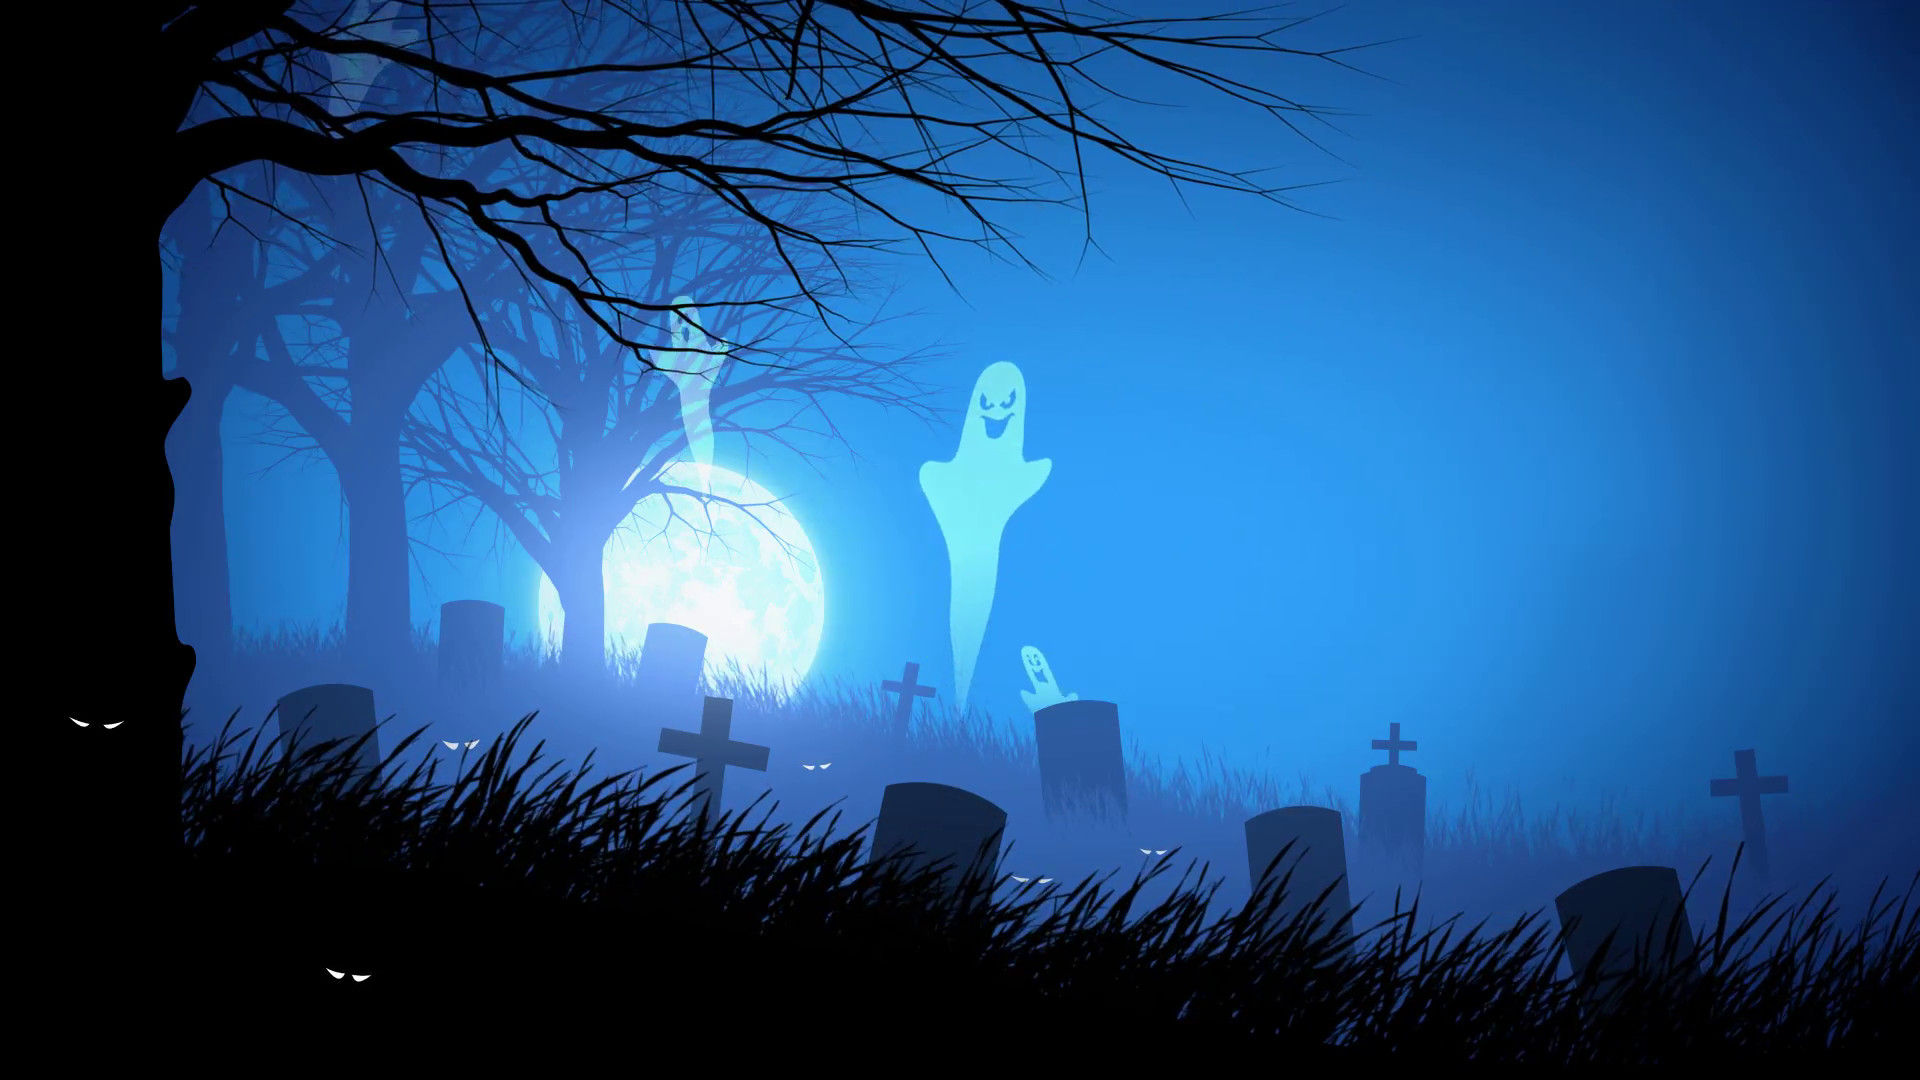 Dual Screen Wallpaper Fall Spooky Halloween Backgrounds 55 Images